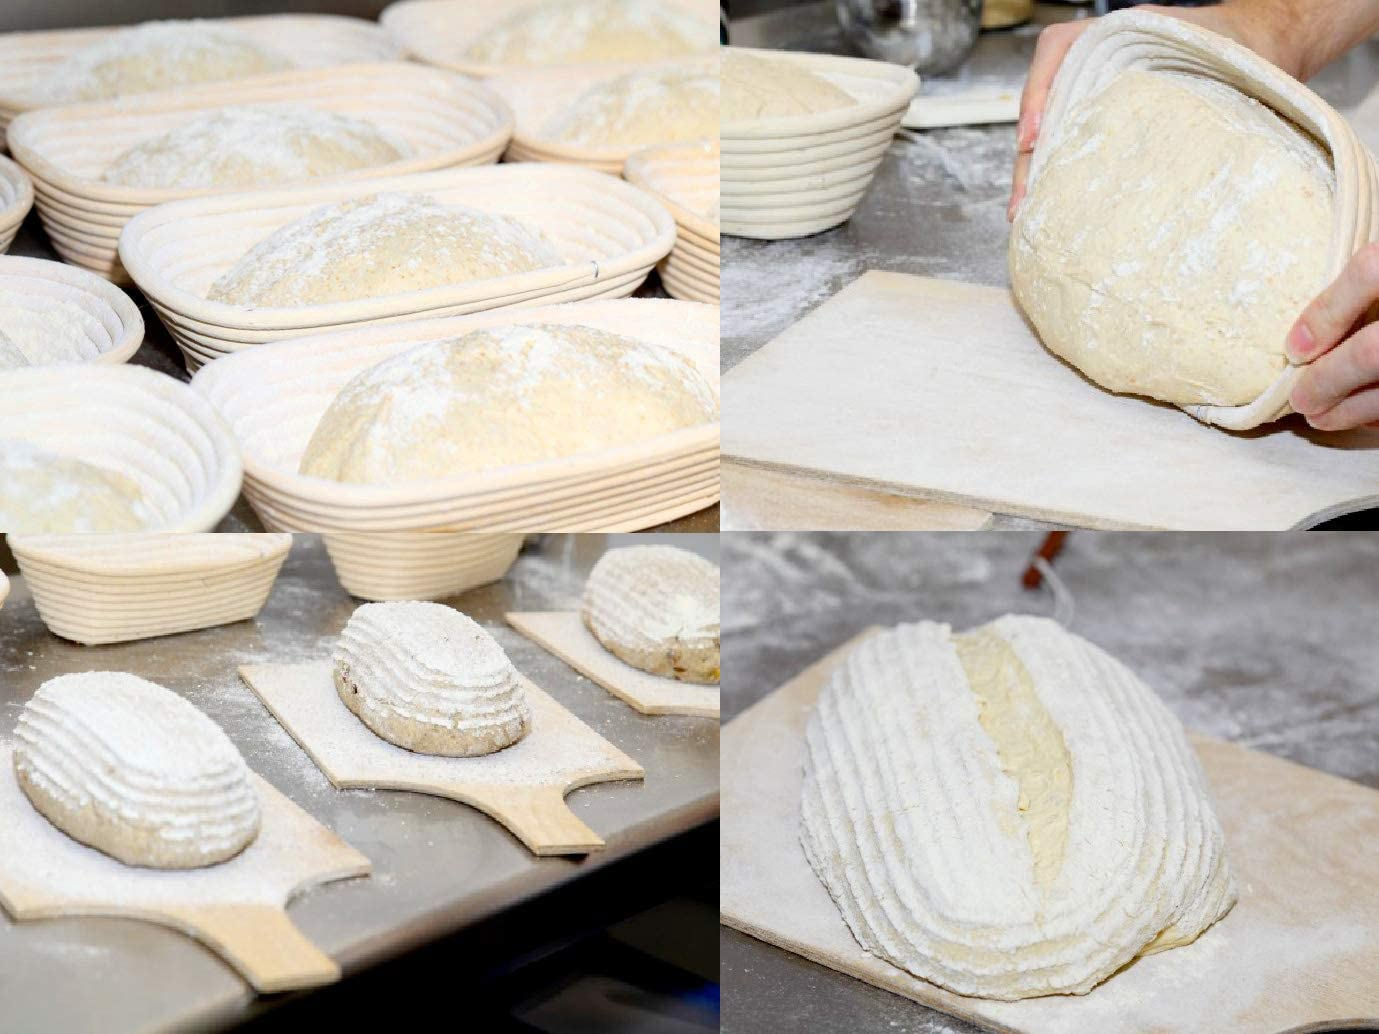 2x Round or Oval Bread Proofing Proving Baskets With liners. Rattan Banneton Brotform Dough UK #1-round-13x6cm